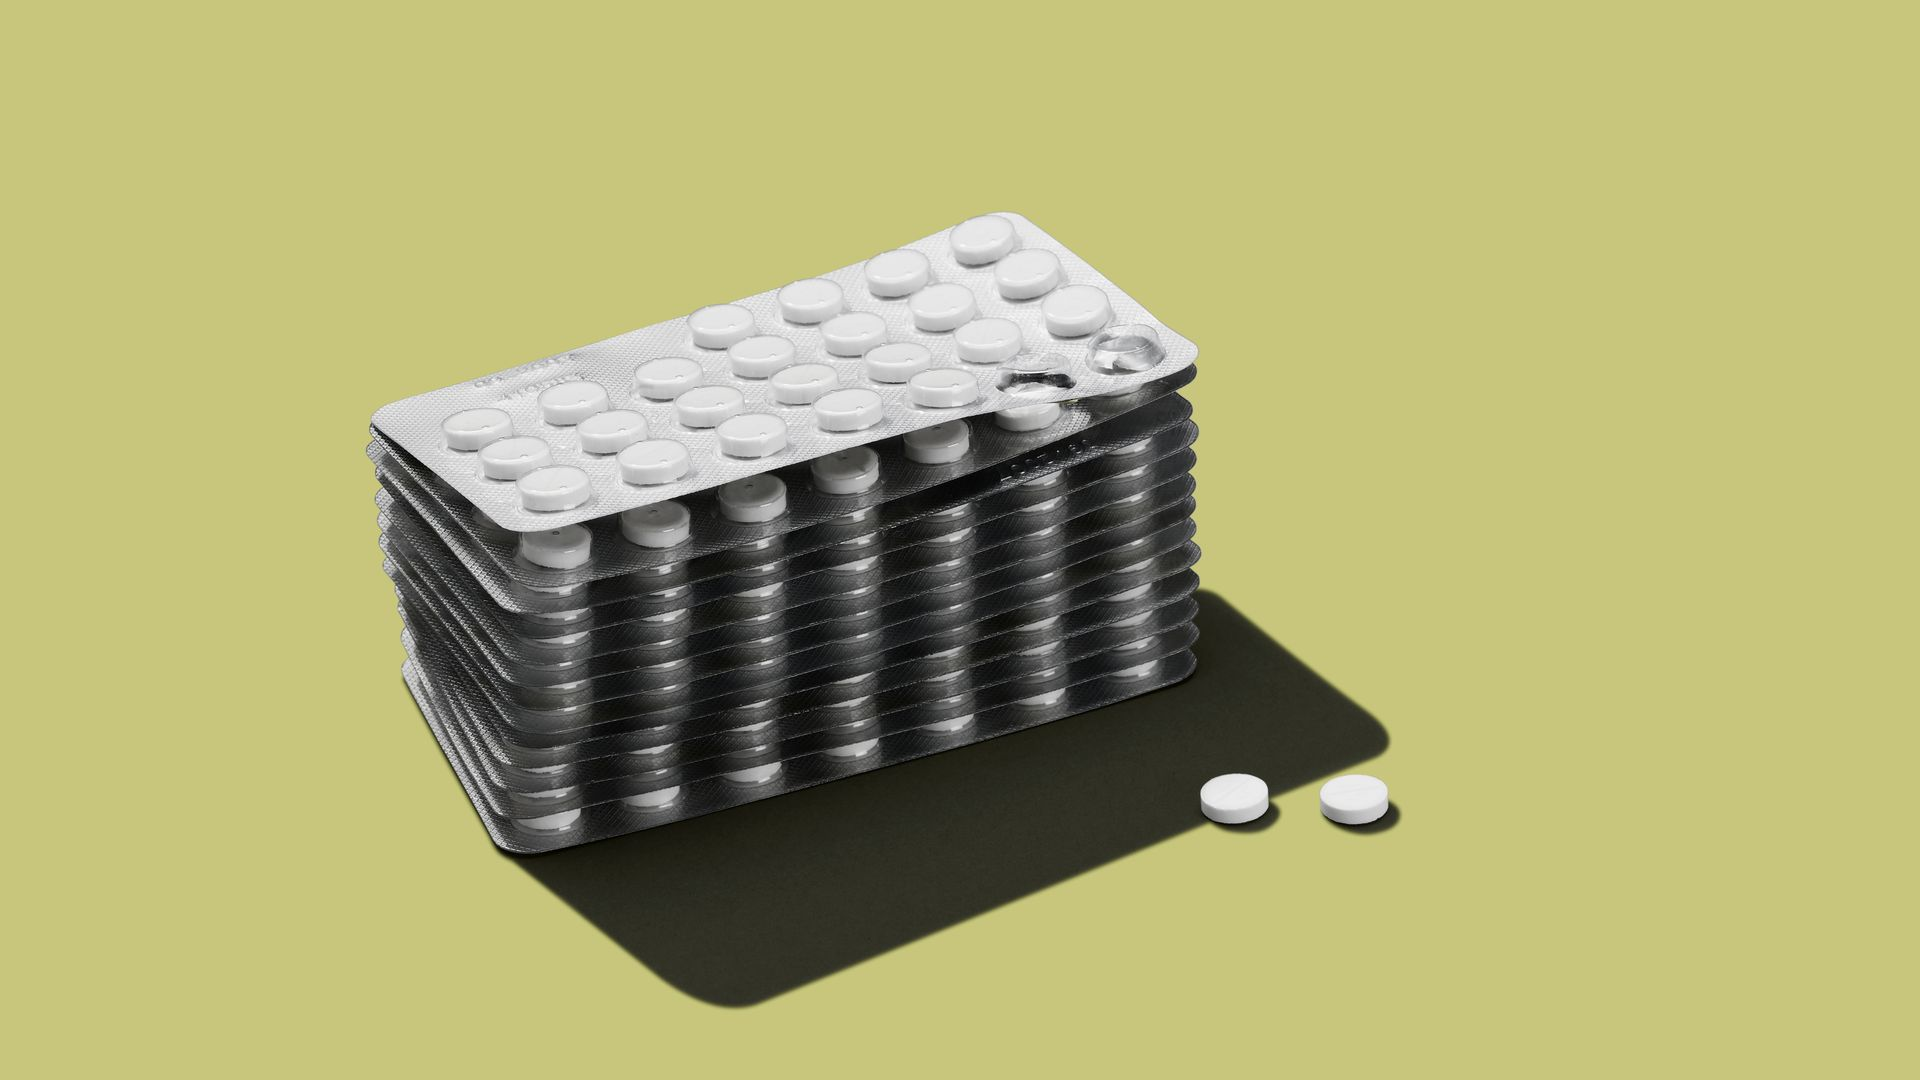 Prescription medicine staked on top of each other